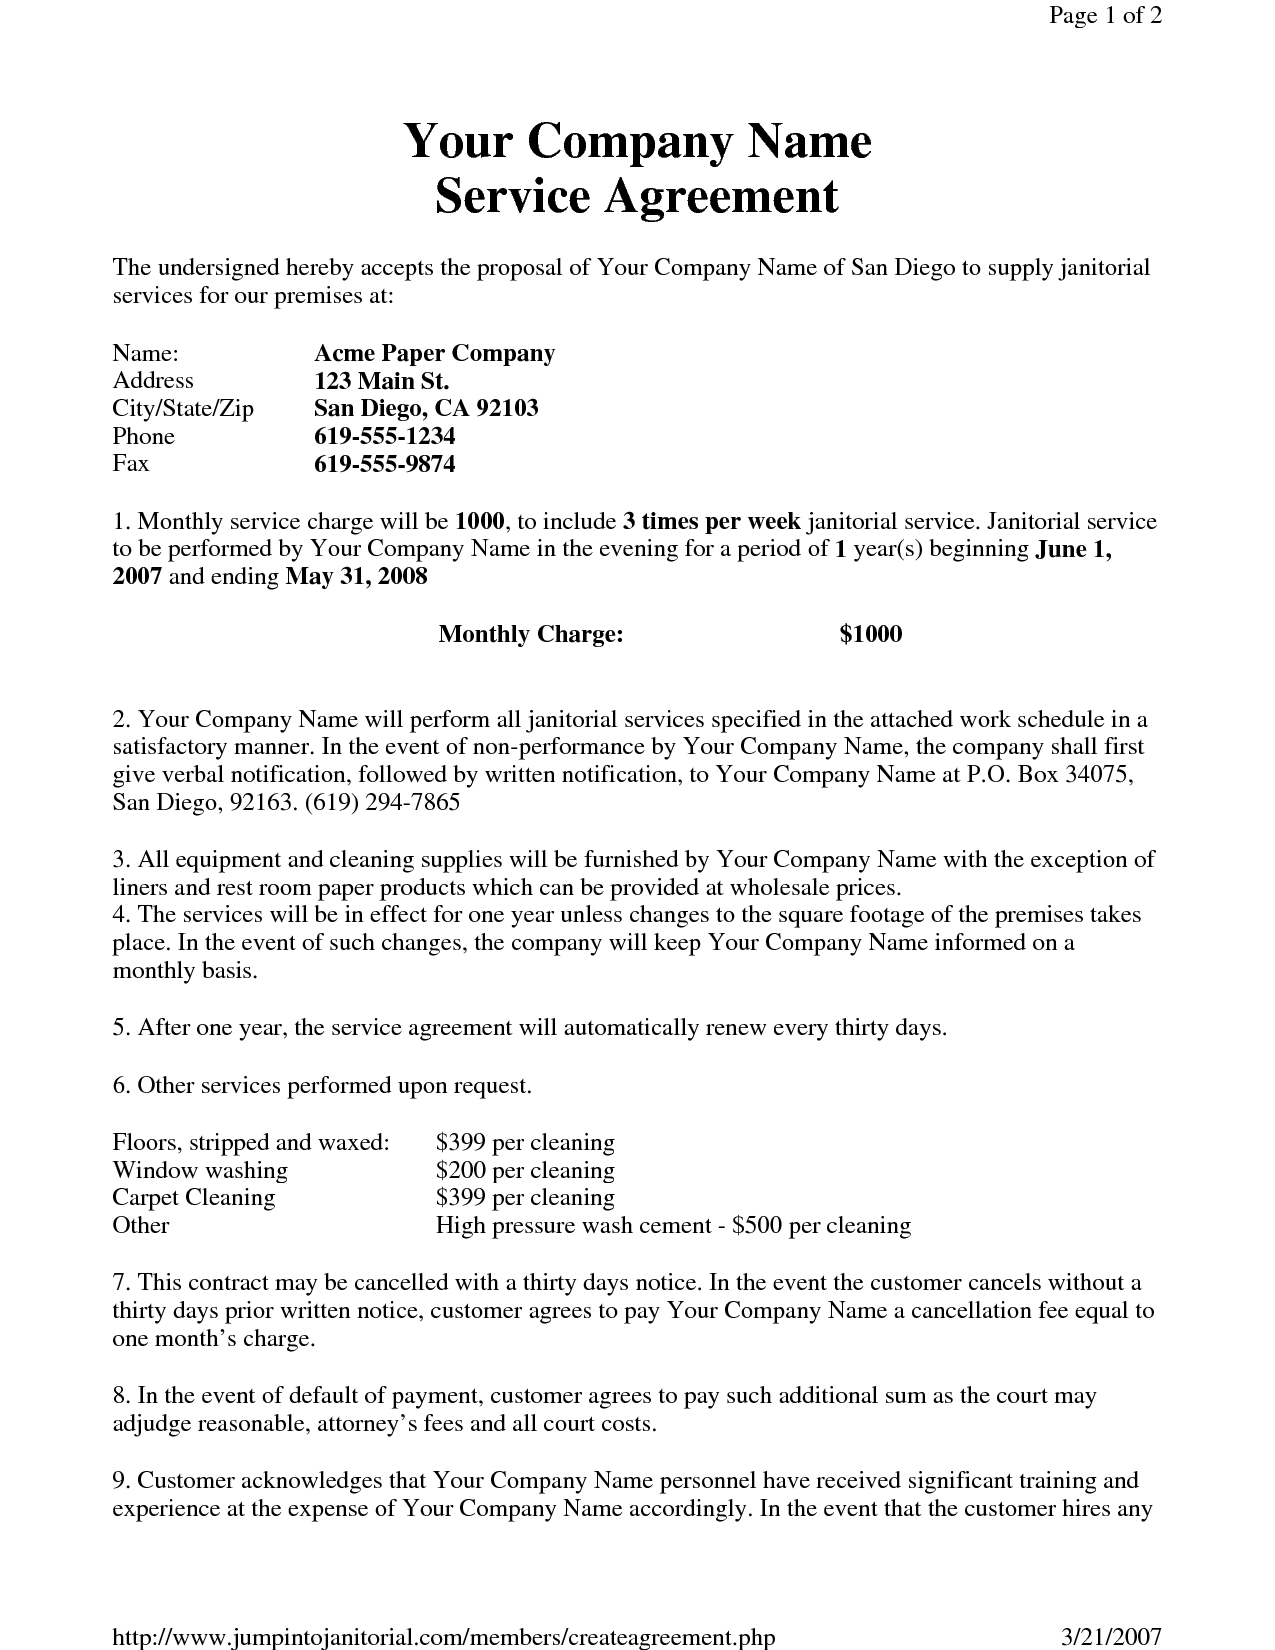 janitorial service agreement by hgh19249 sample